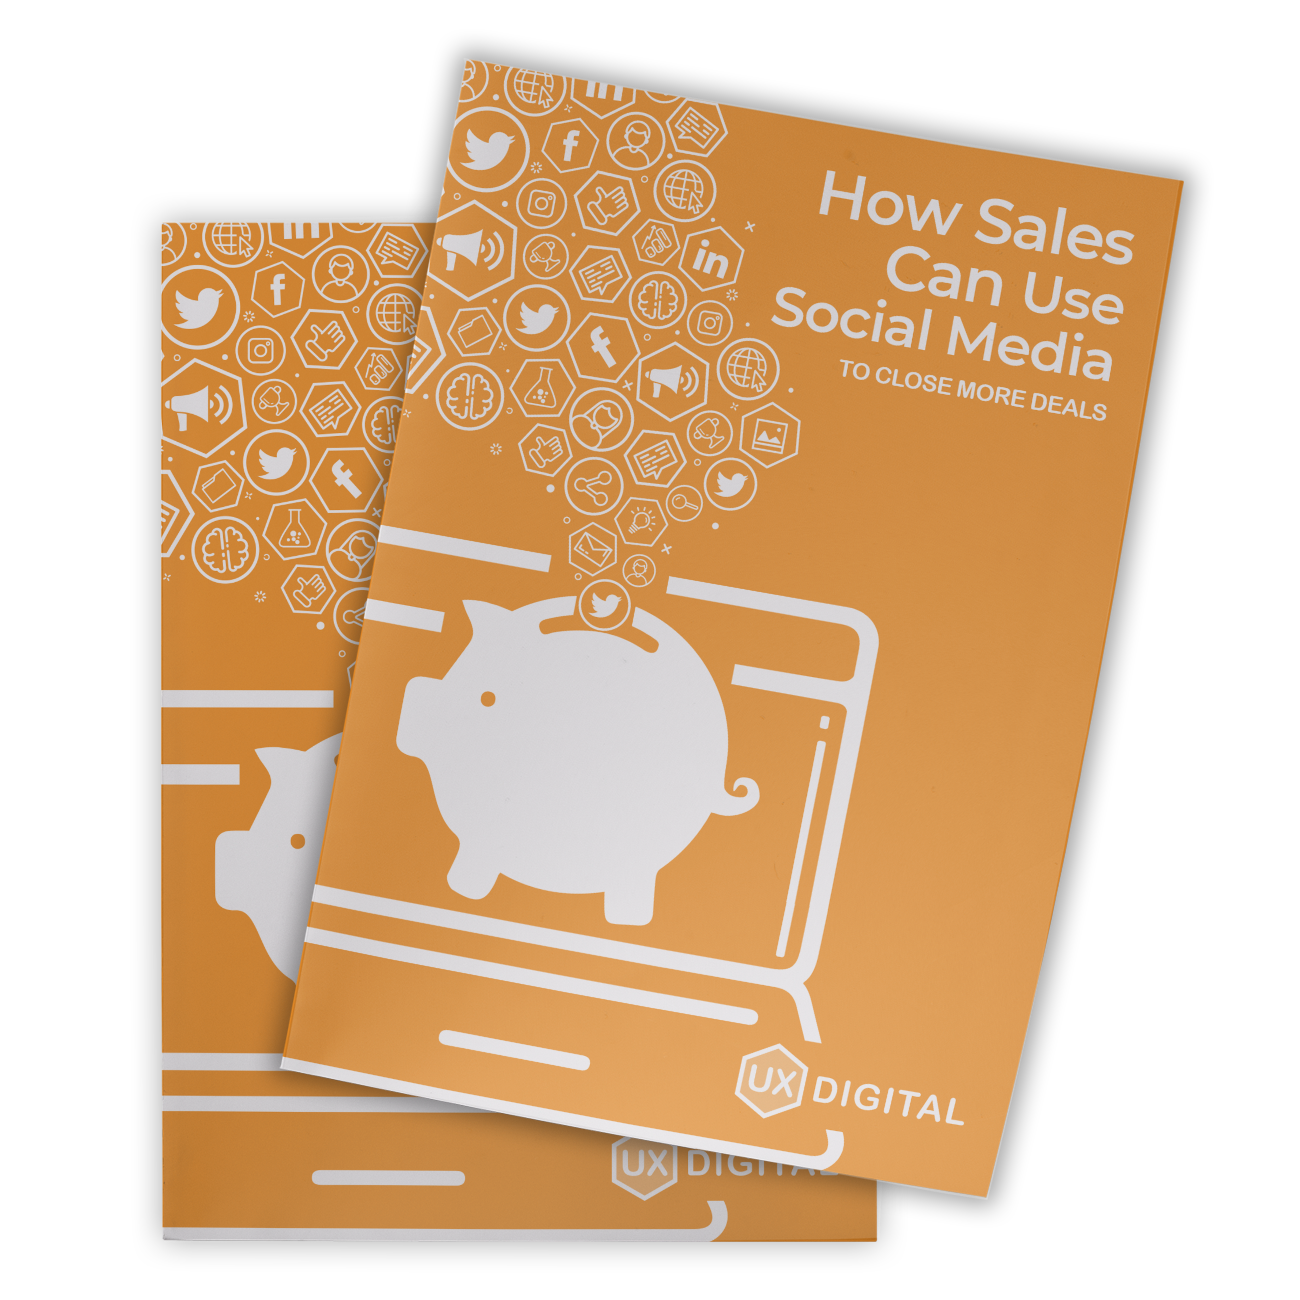 How-Sales-can-use-Social-Media-eGuide-M.png